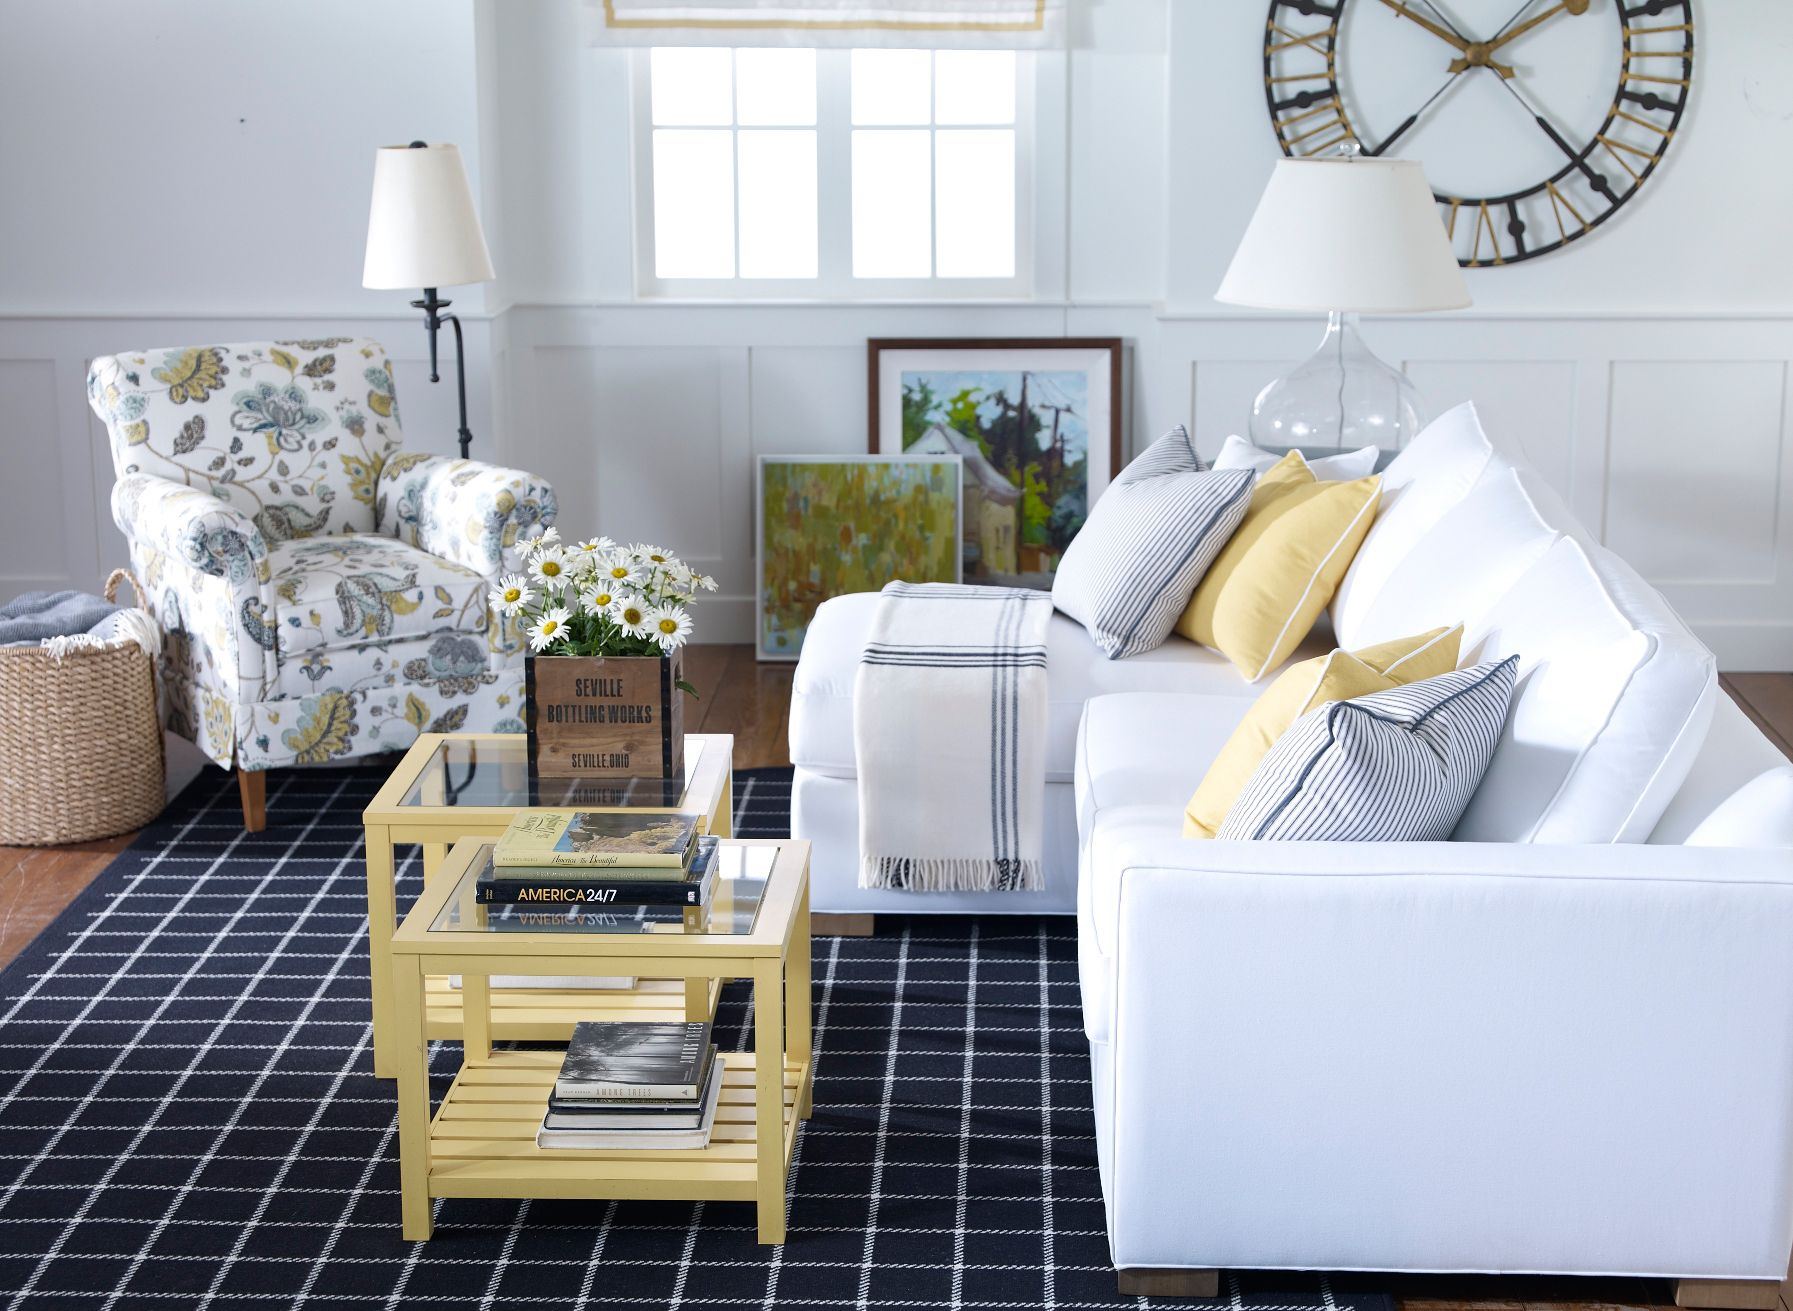 living room furniture ethan allen. Colored furniture  Ethan Allen blue white and yellow living room